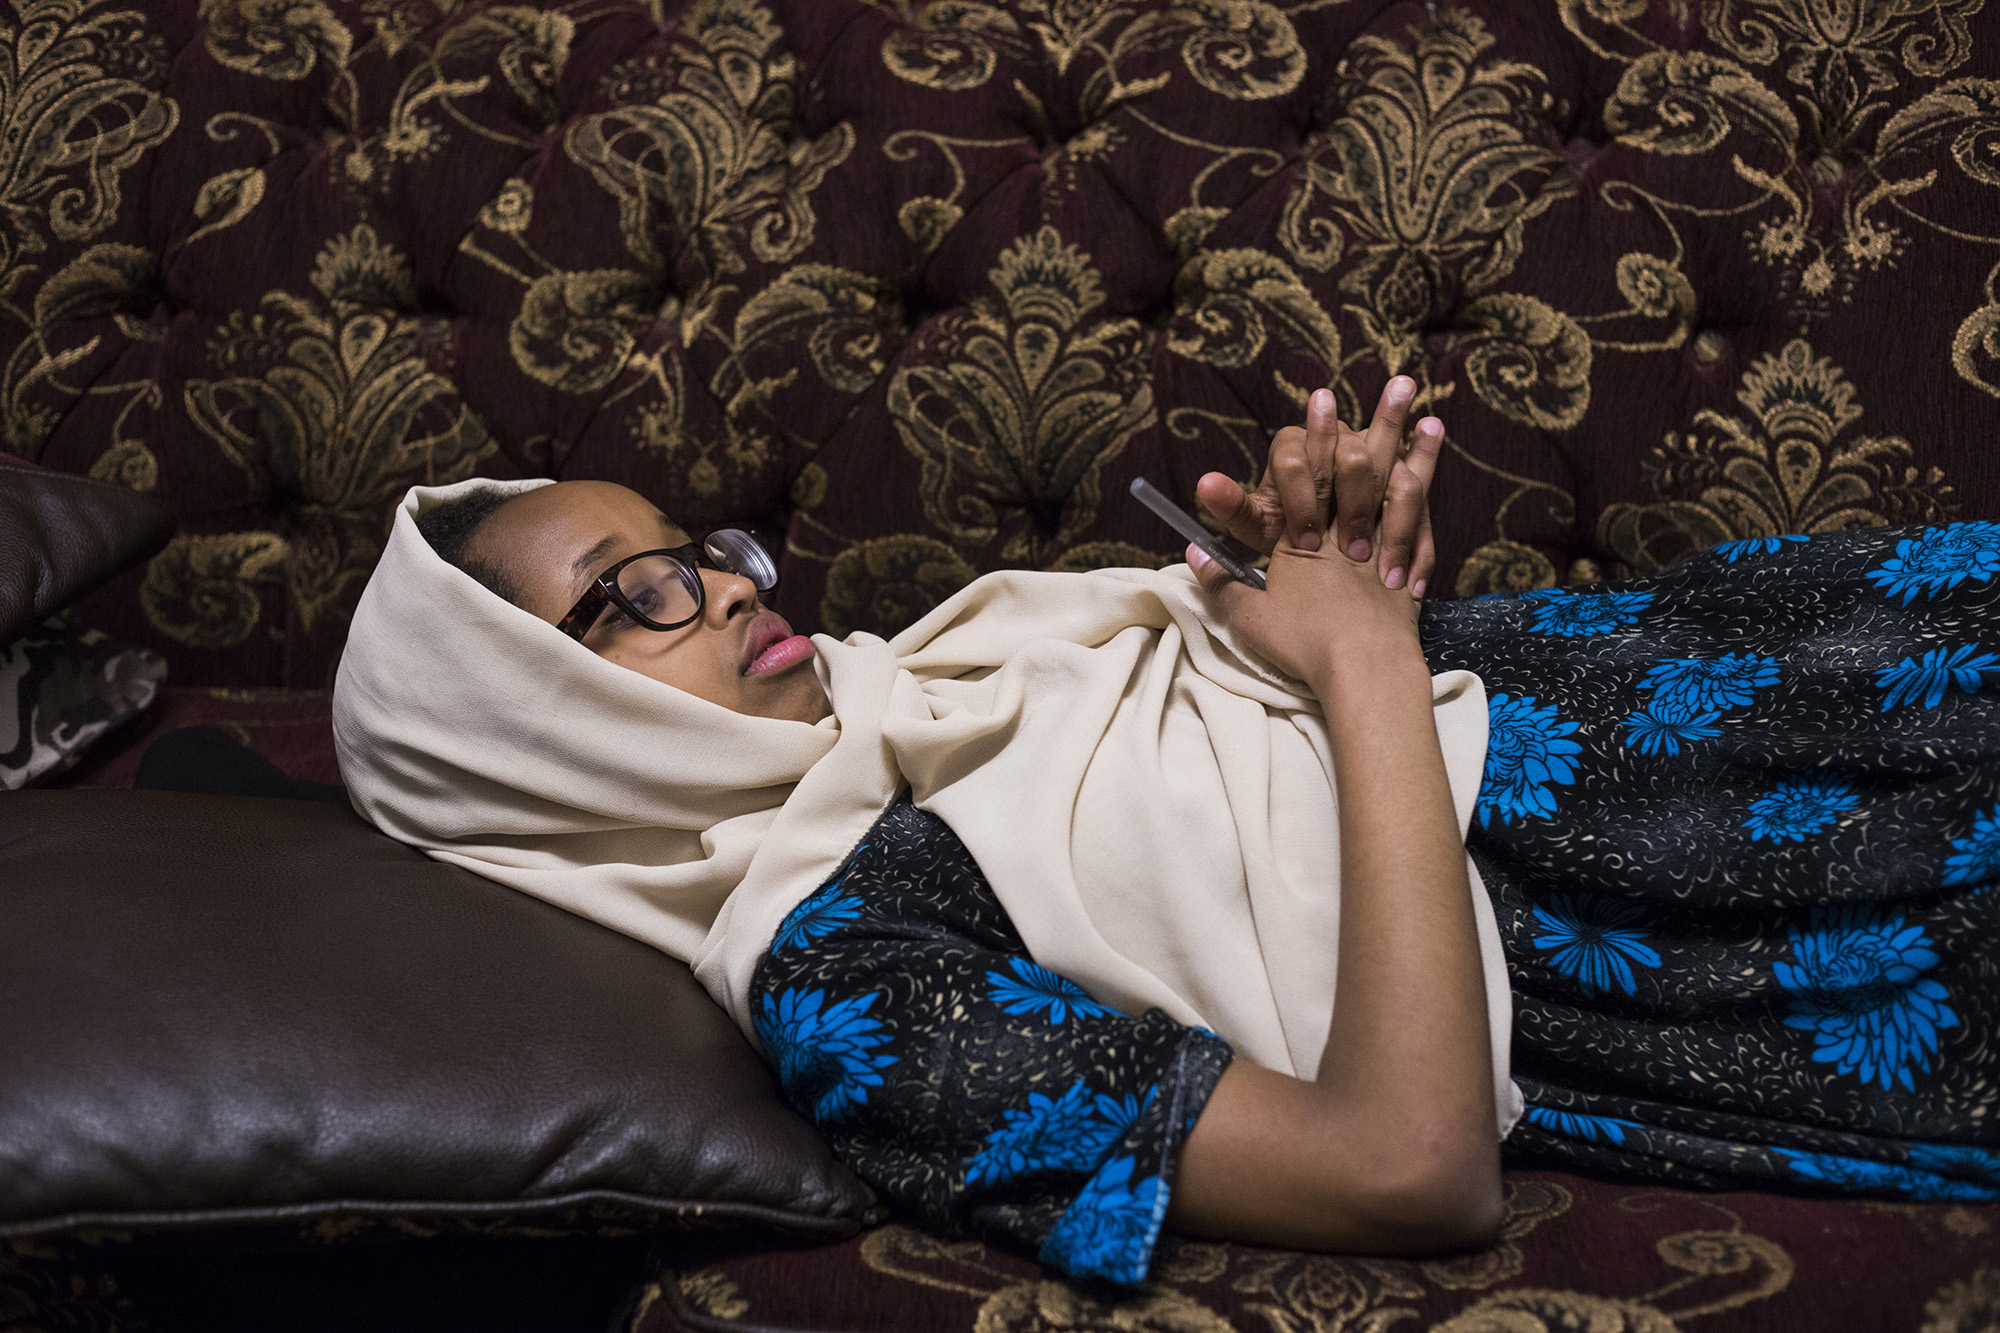 Aisha Mohamud, 13, lies on her couch as her mother, Waris Mohamud, helps her little brother, Abdullah, tell a classic Somali story at their home in Minneapolis, Minn., on Thursday, October 12, 2017. (Brittany Greeson/GroundTruth)